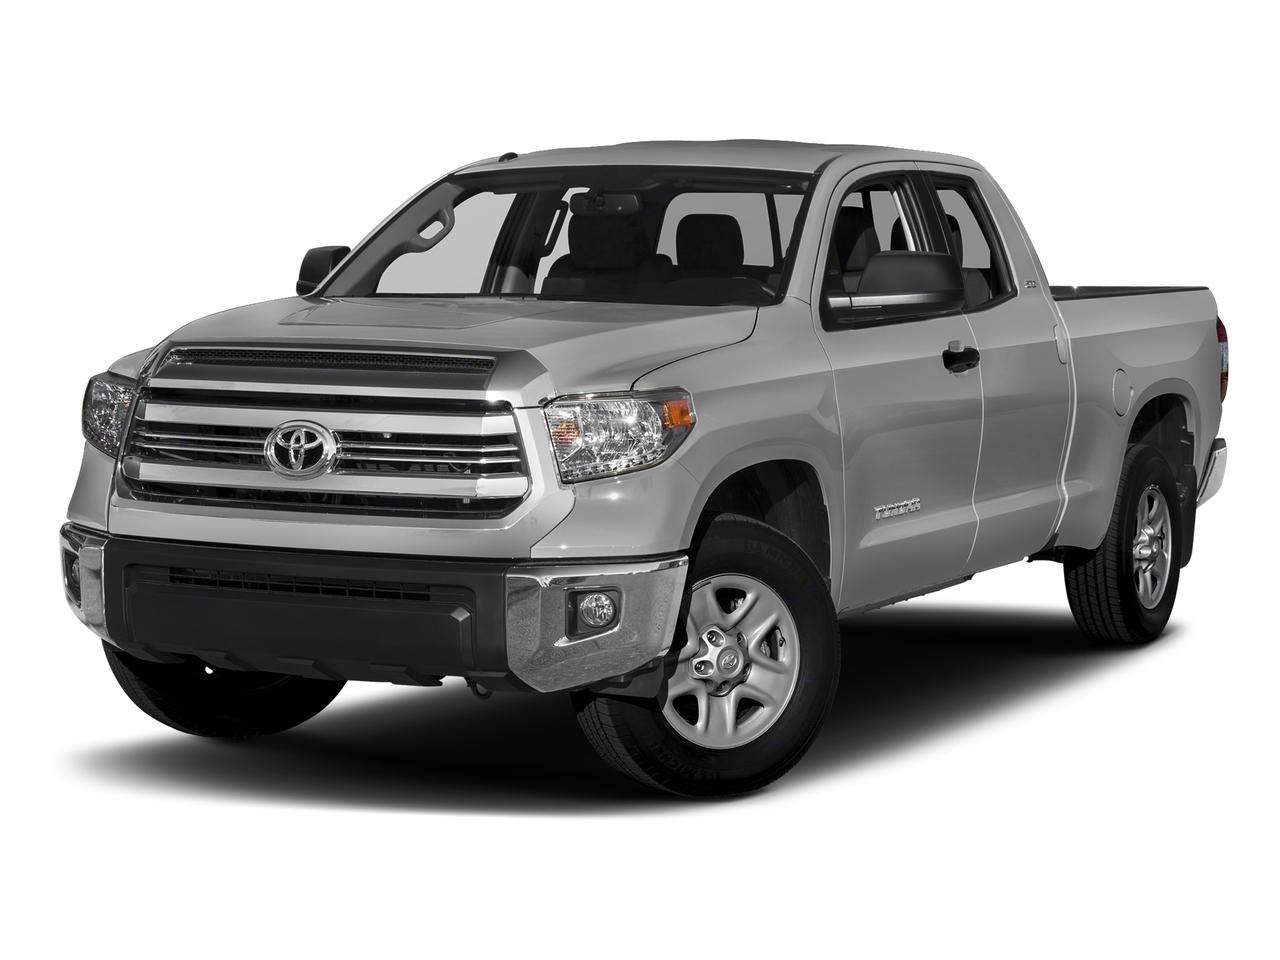 2017 Toyota Tundra 4WD Vehicle Photo in Flemington, NJ 08822